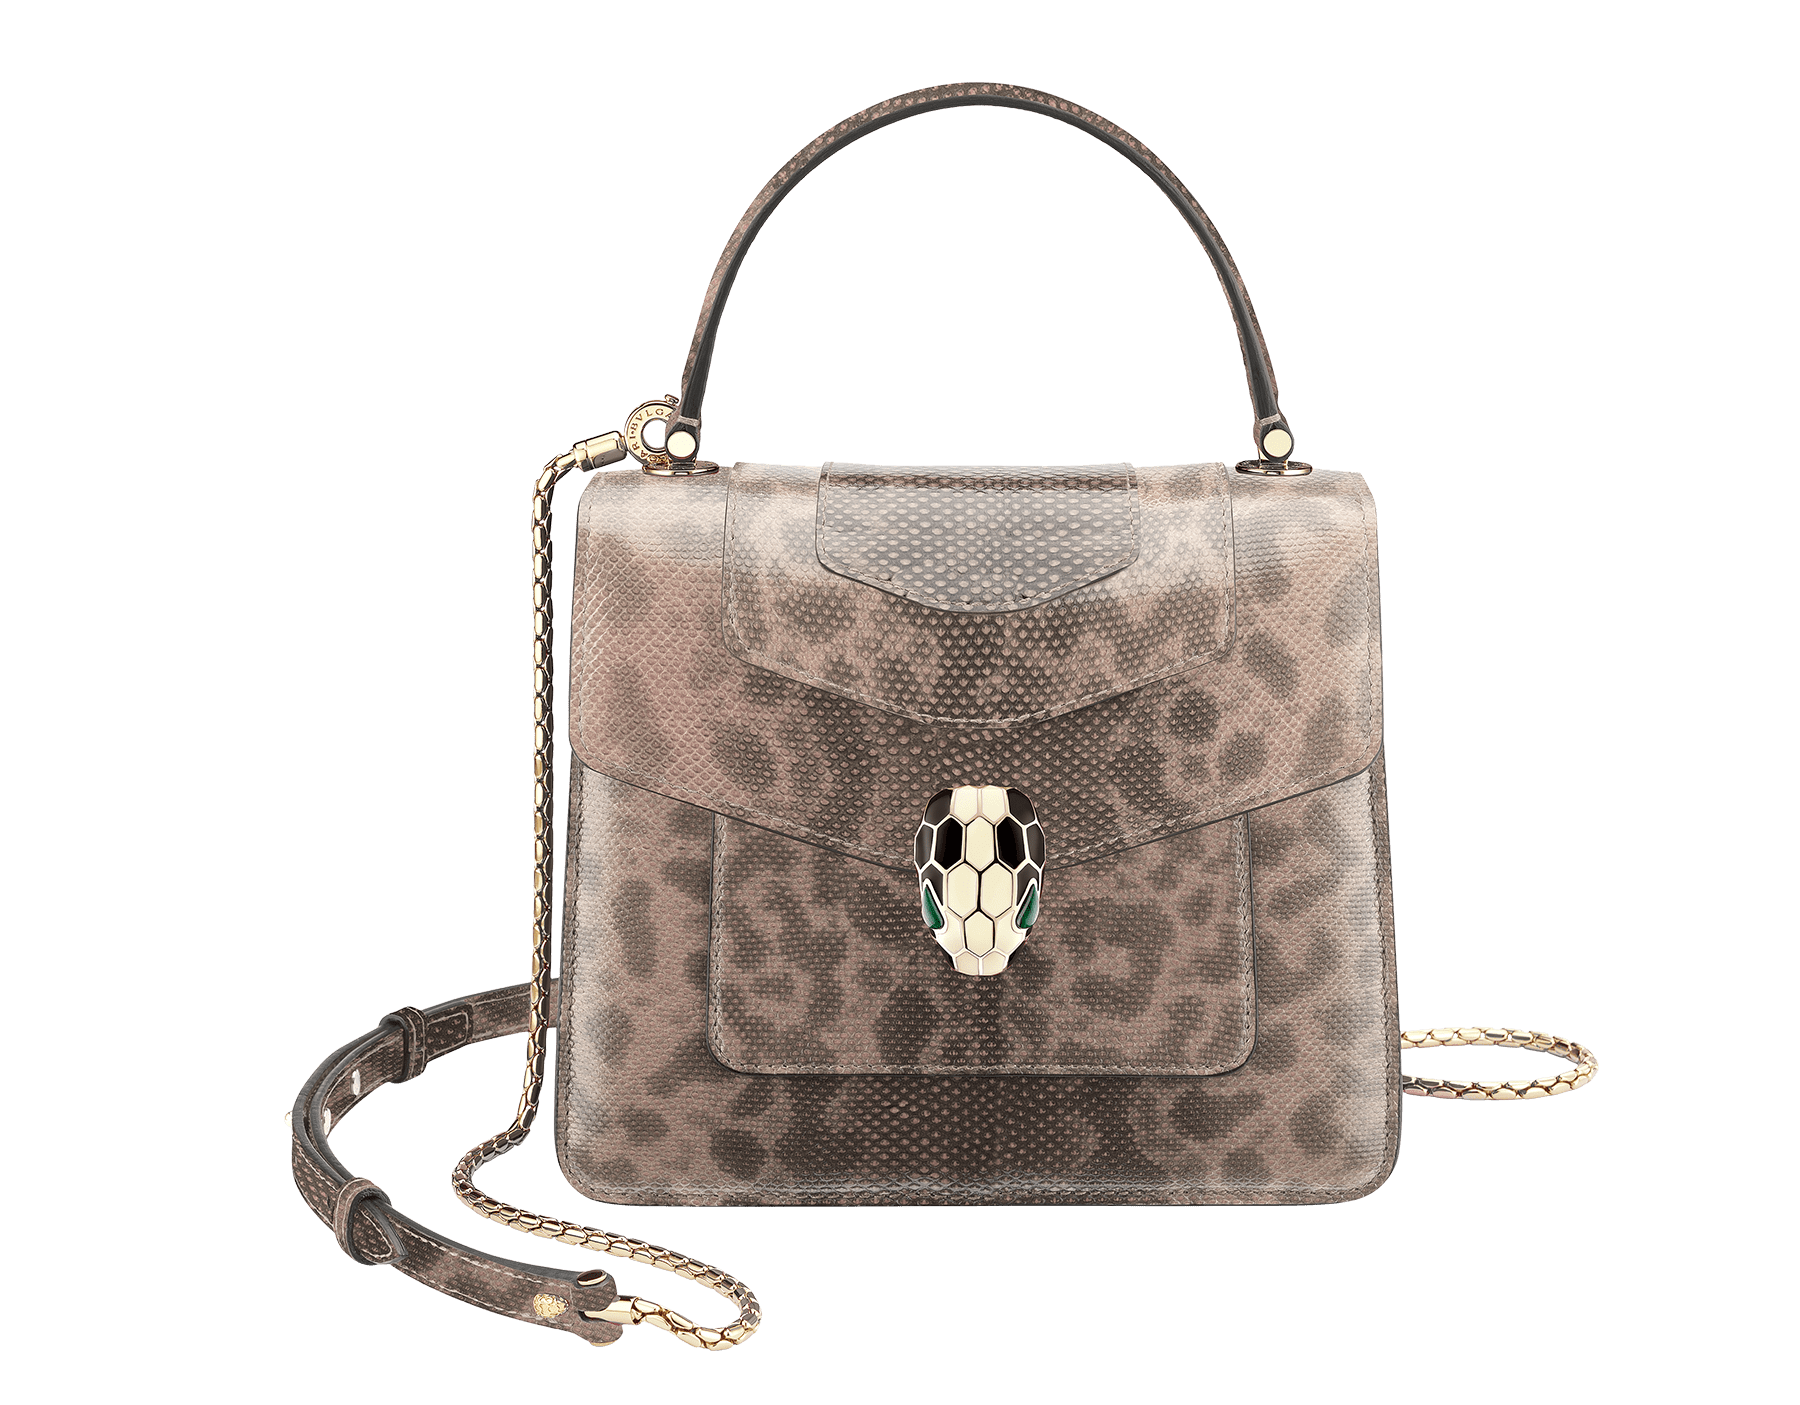 """""""Serpenti Forever"""" crossbody bag in shiny crystal rose karung skin. Iconic snakehead closure in light gold plated brass enriched with black and white enamel and green malachite eyes 287101 image 1"""